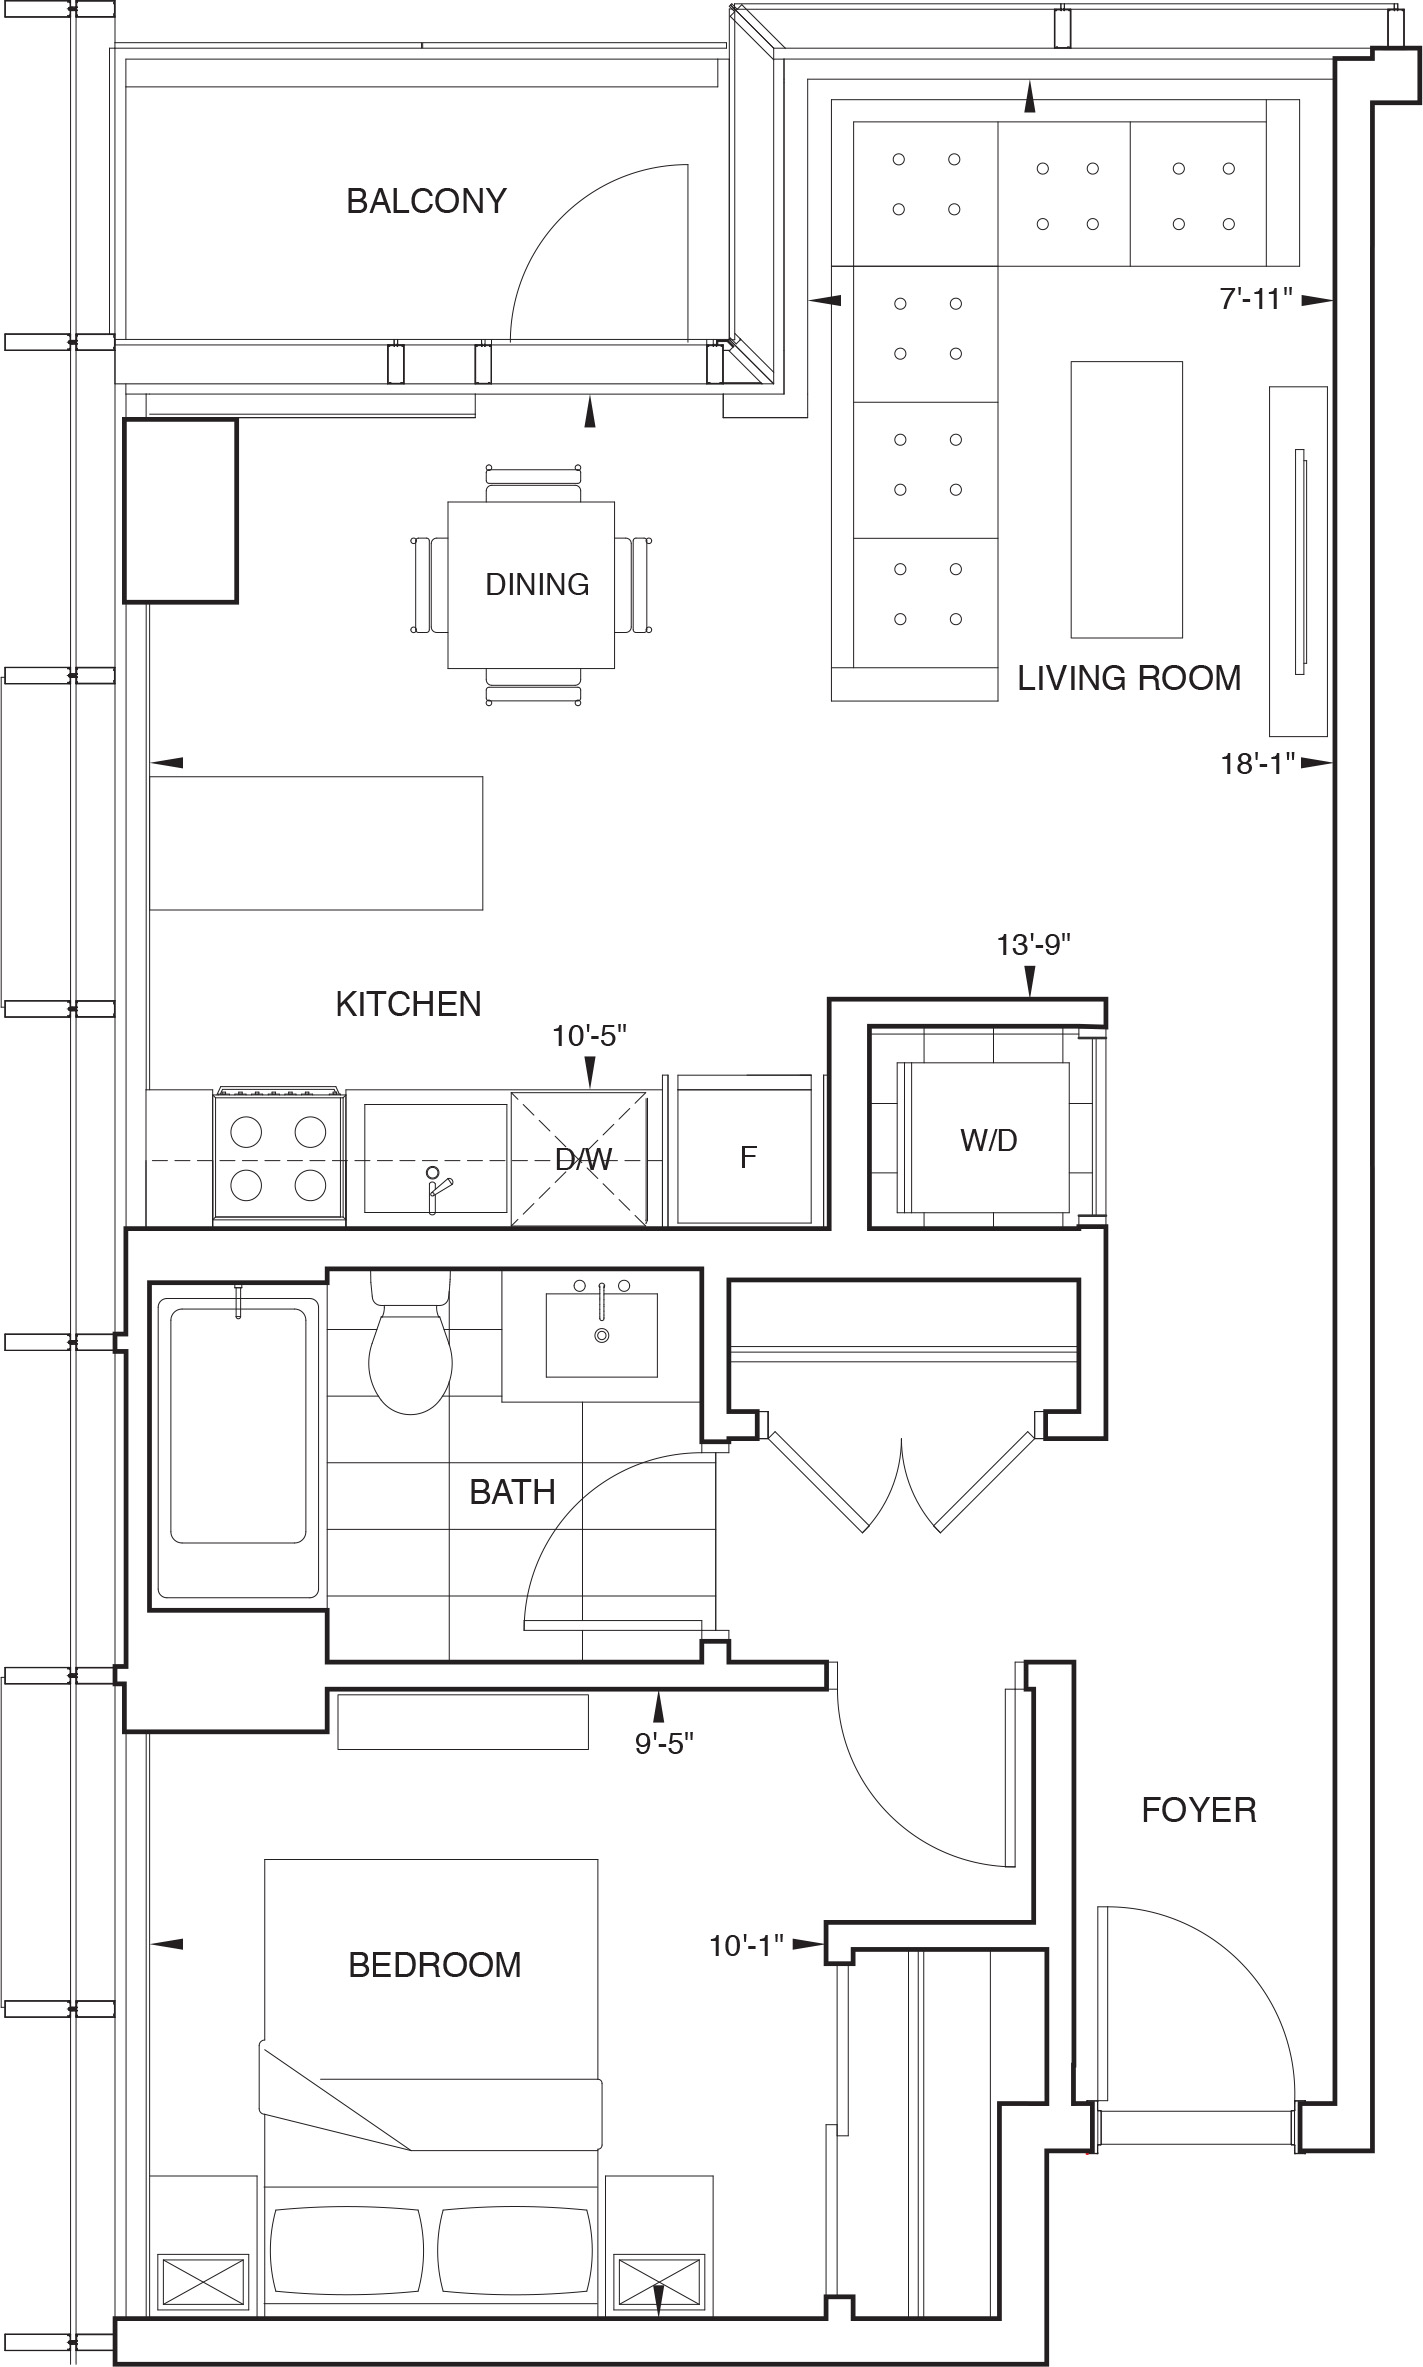 Floorplan for SKY Residence B